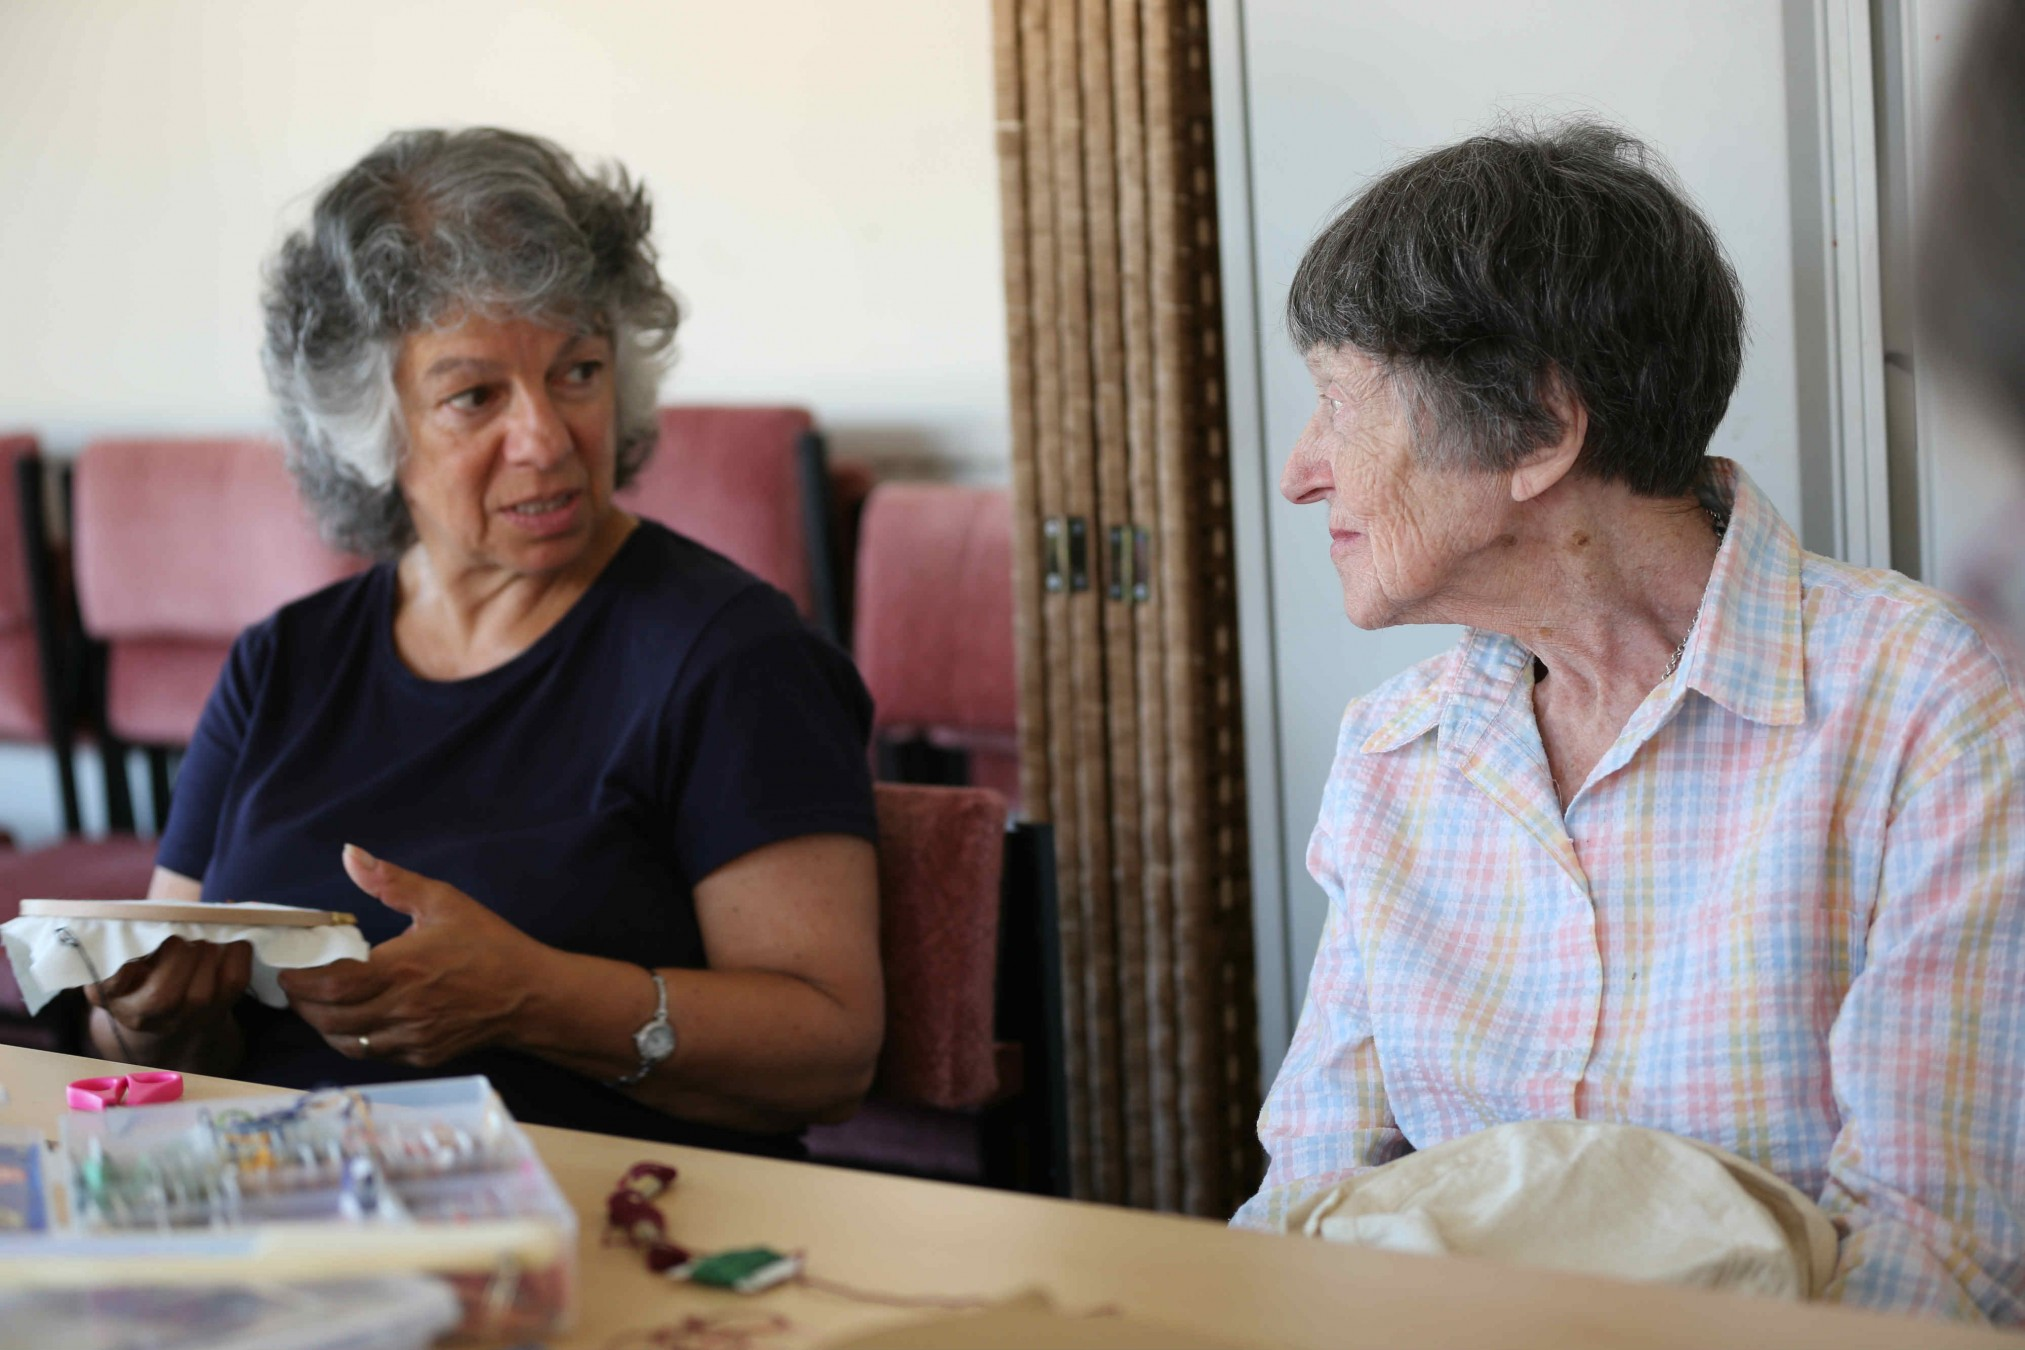 The Sewing Rooms builds confidence of women in later life